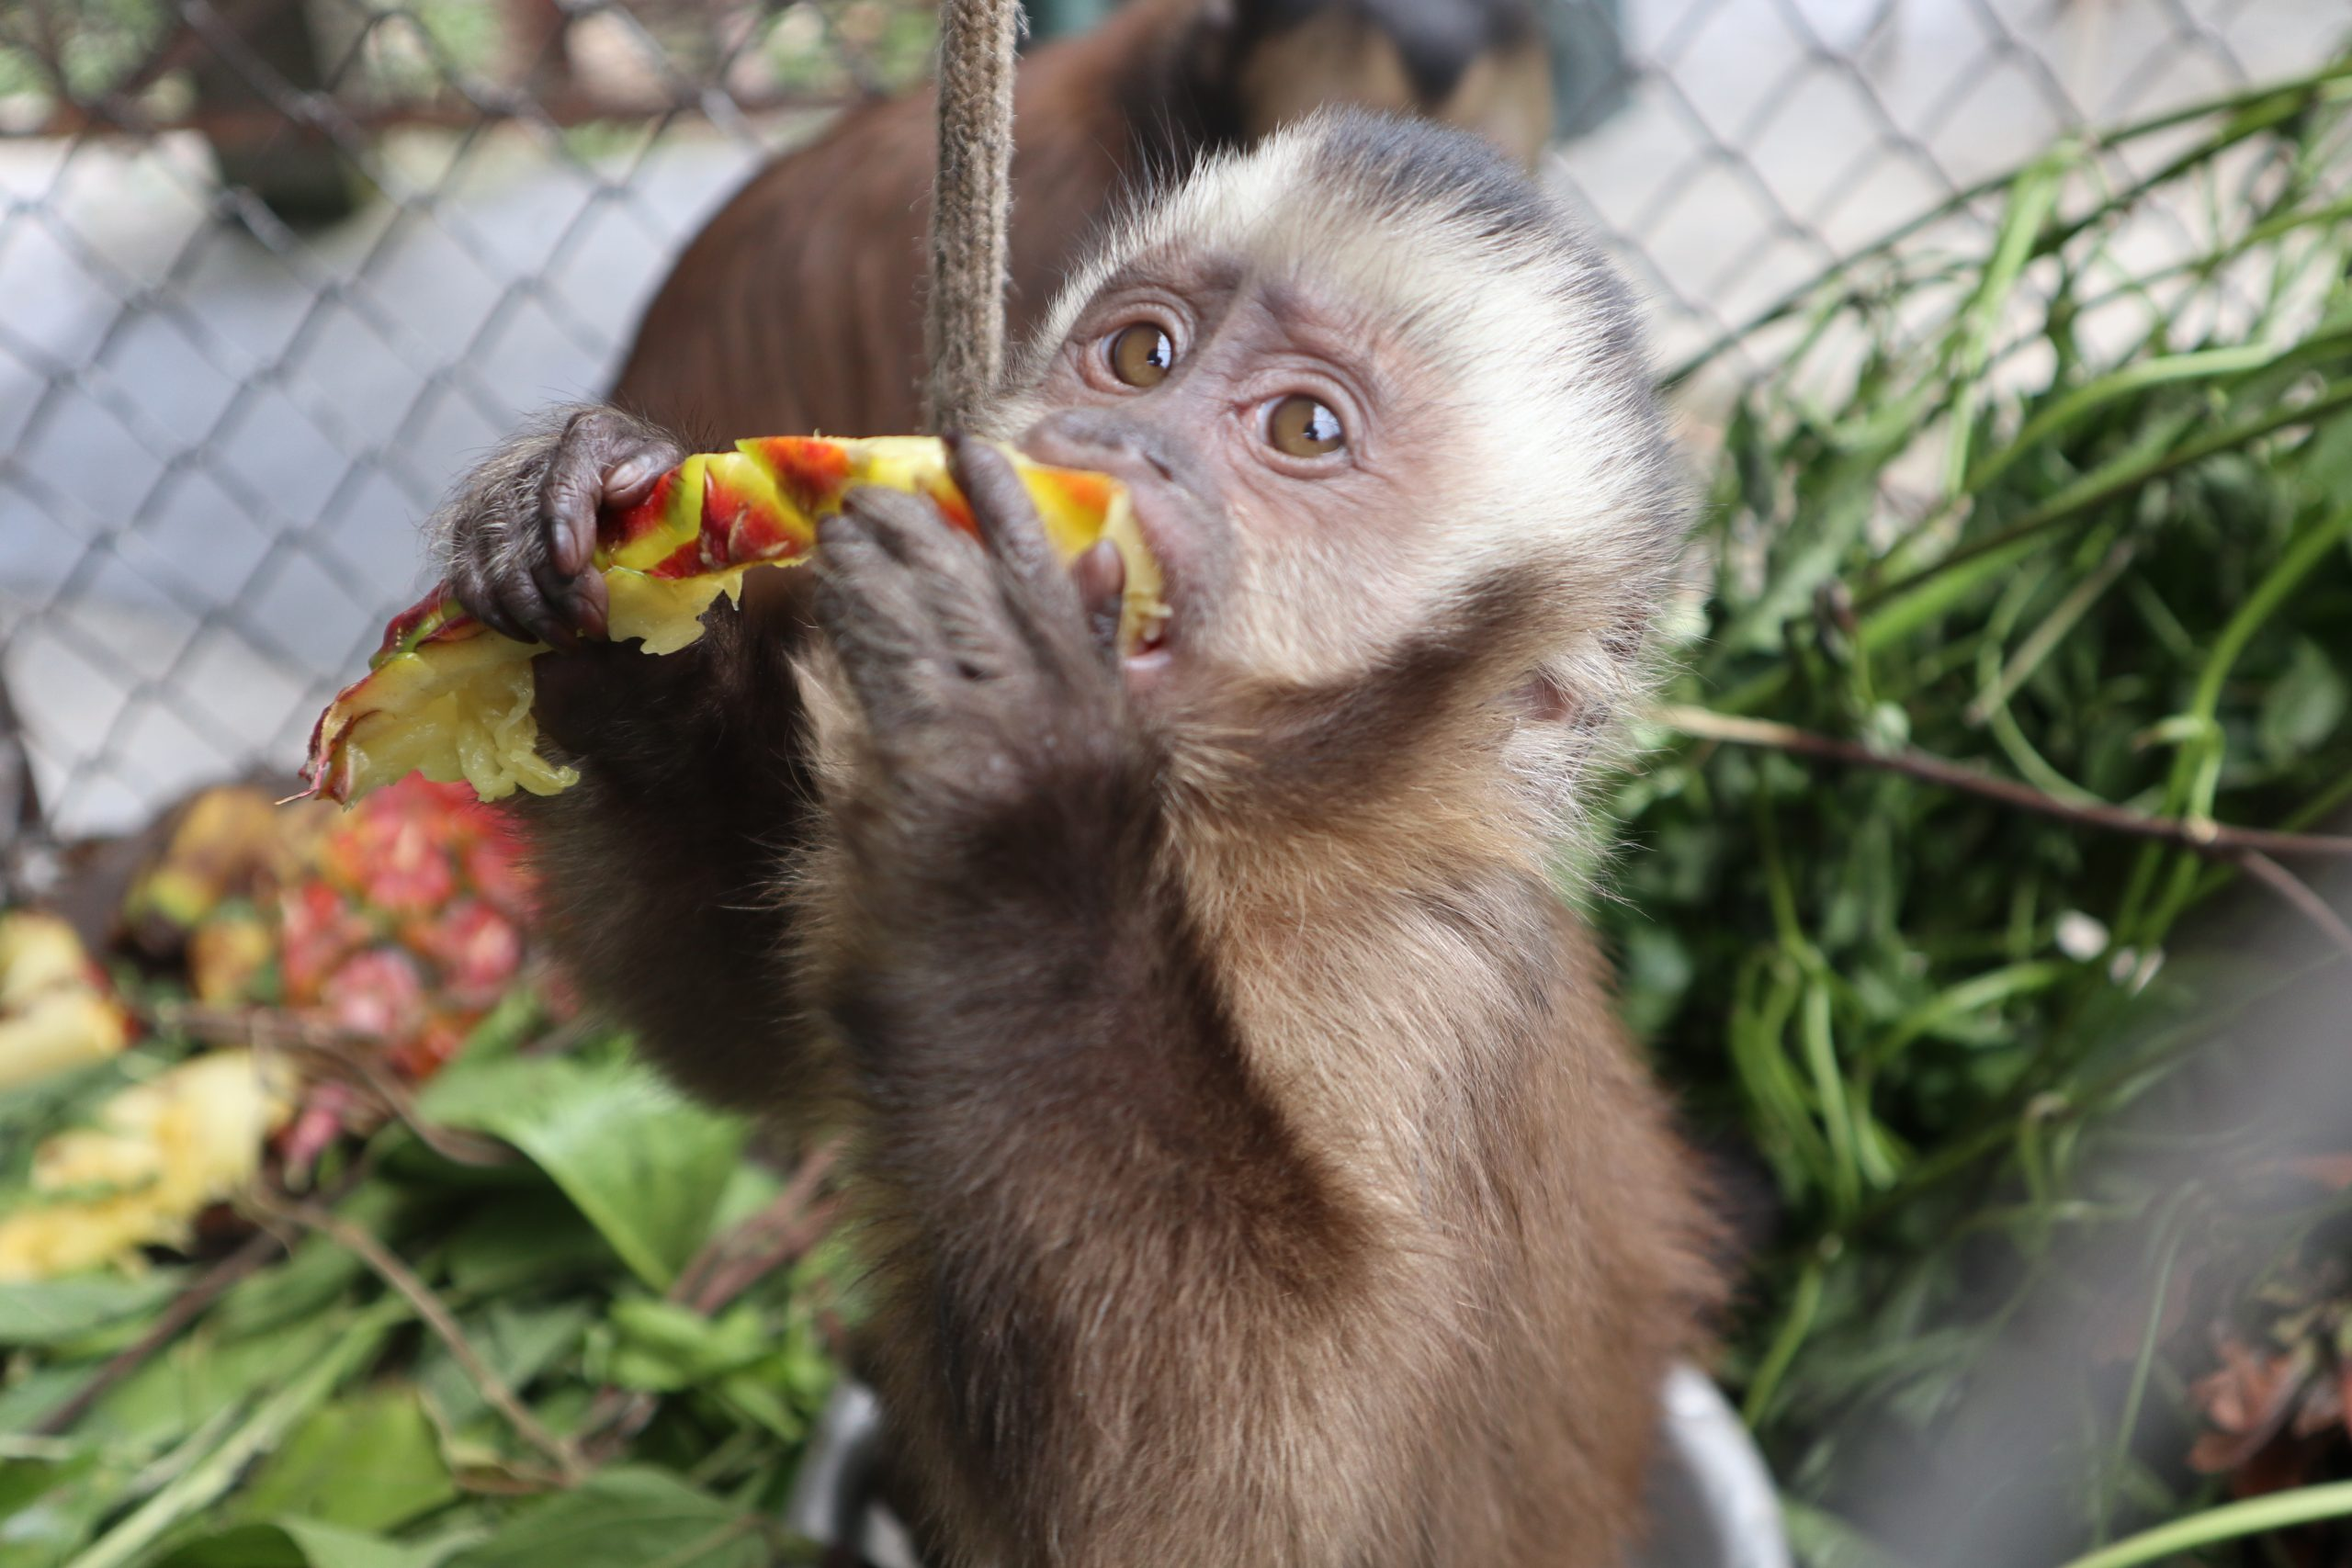 A capuchin monkey enjoys some pineapple for lunch at Parque Machía